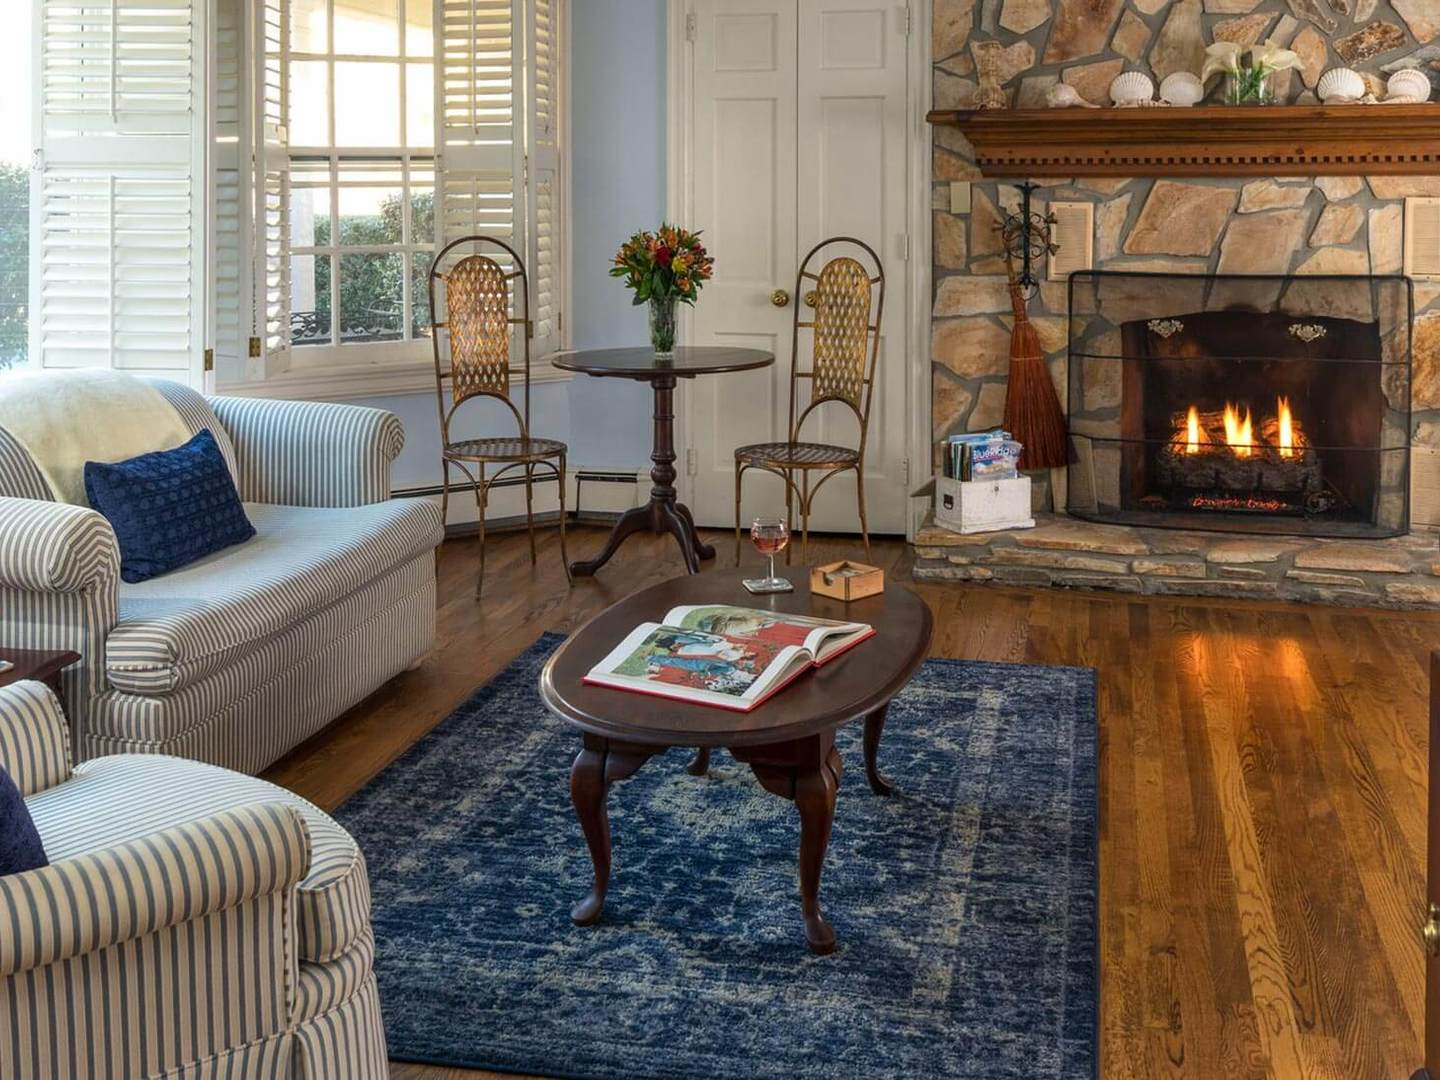 A living room filled with furniture and a fire place at The Yellow House Bed and Breakfast.